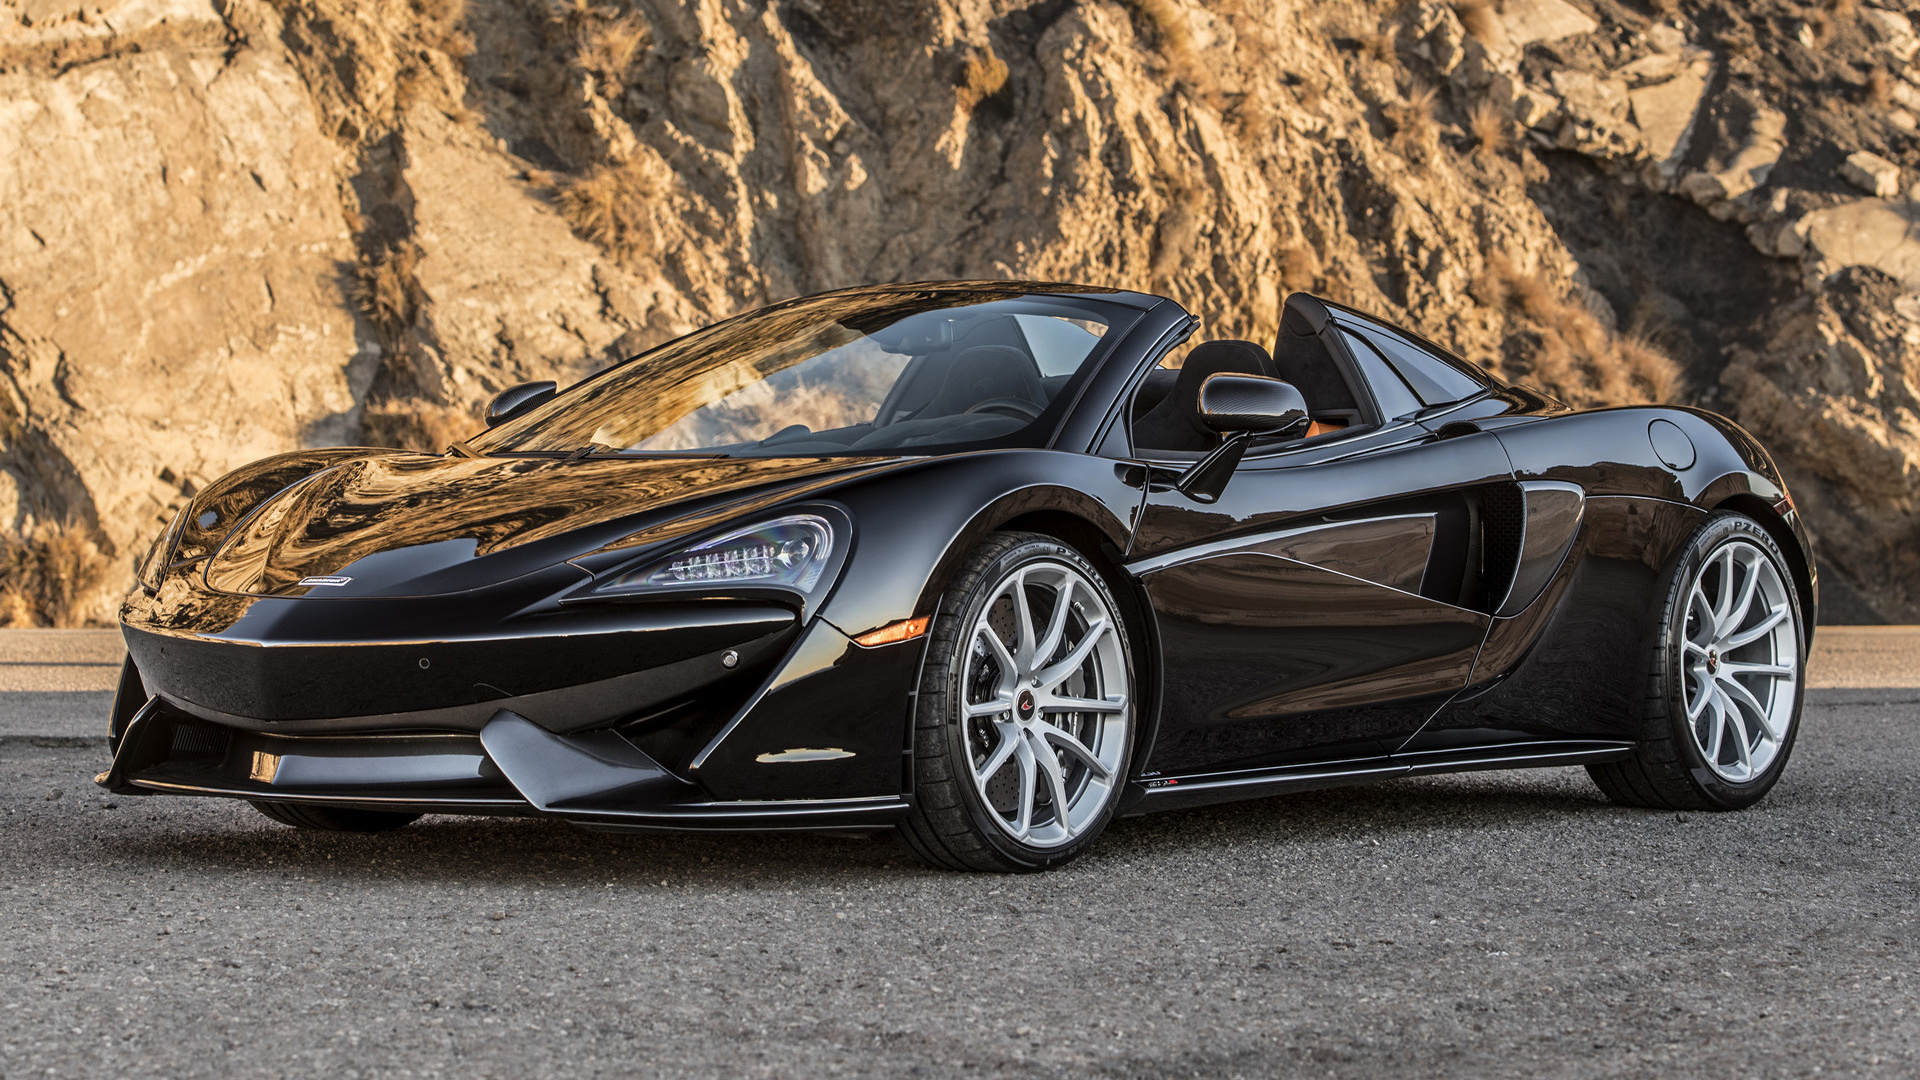 2018 McLaren 570S Spider (US) - Wallpapers and HD Images ...